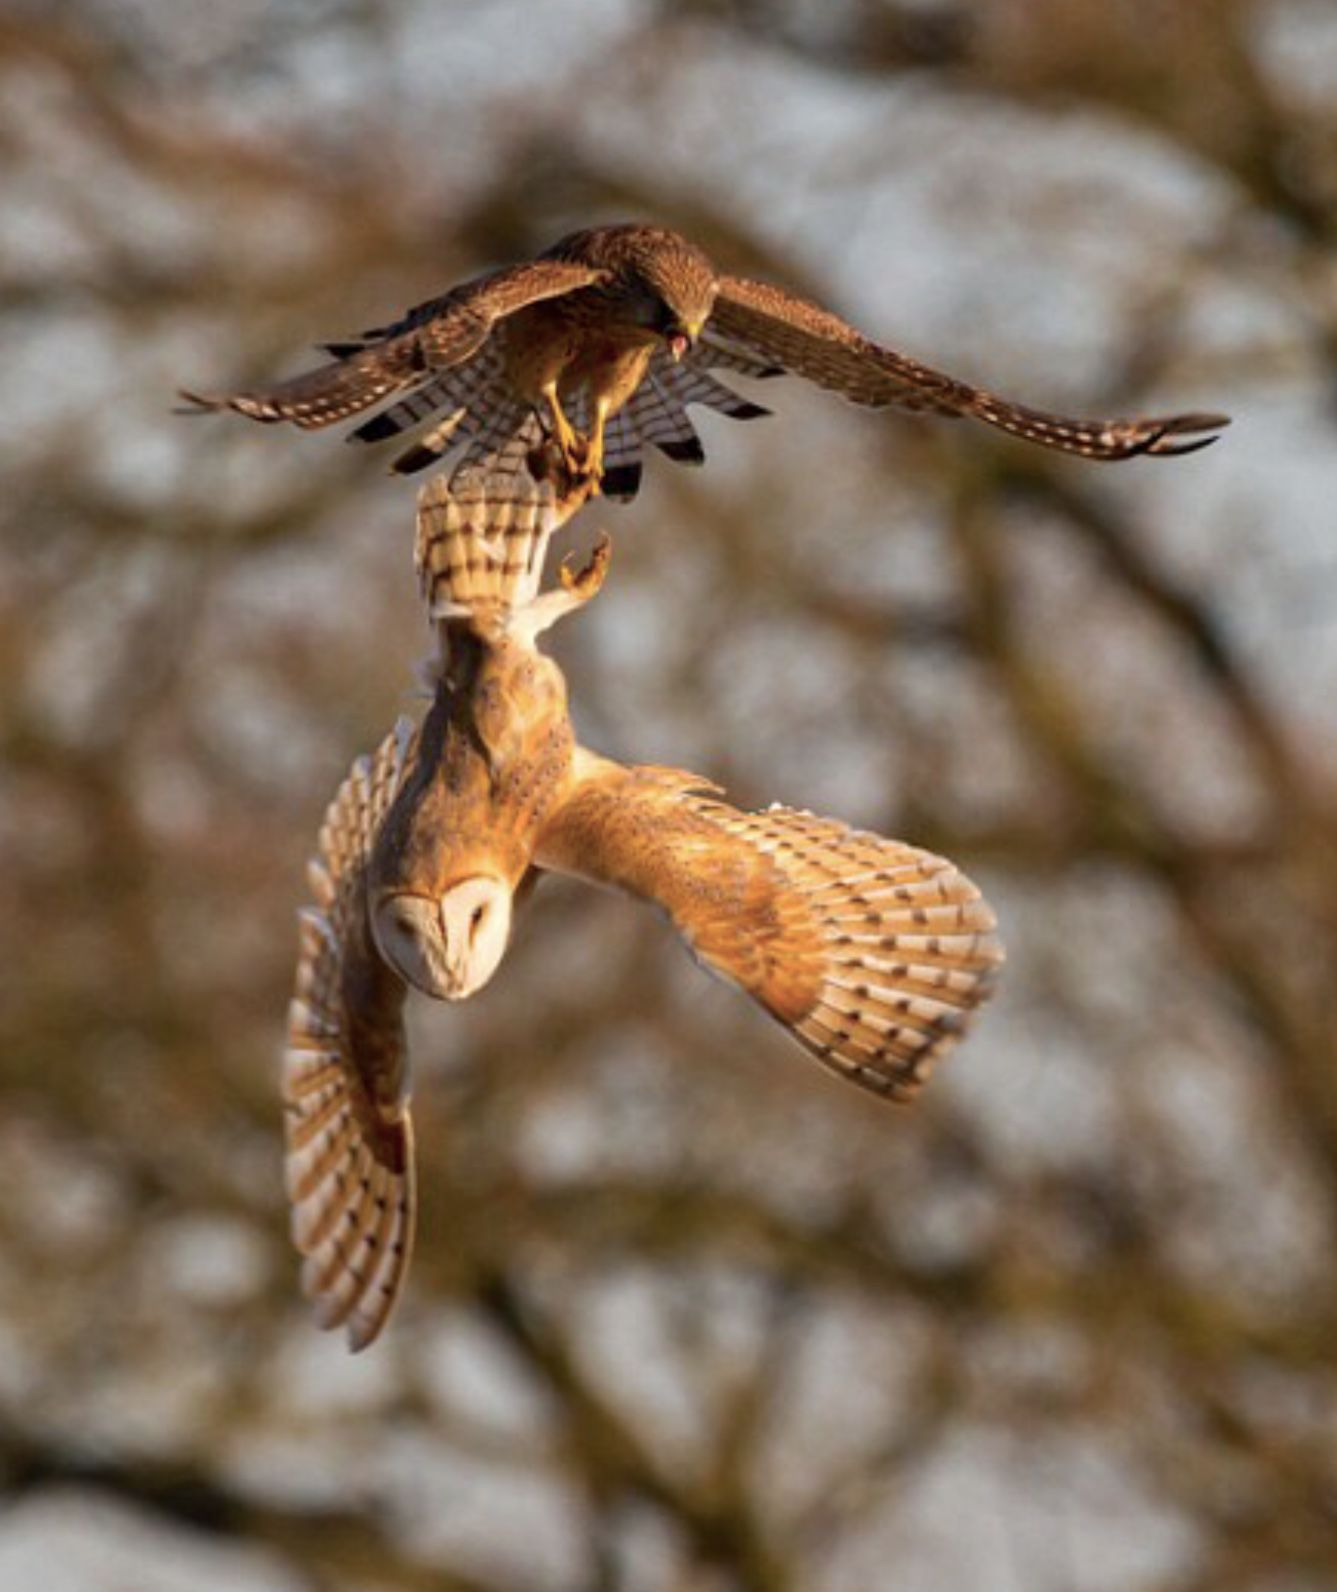 In England A Kestrel And Barn Owl Fight Over Dinner The Had Caught Vole Nearby Field Was Taking It Home When Swept